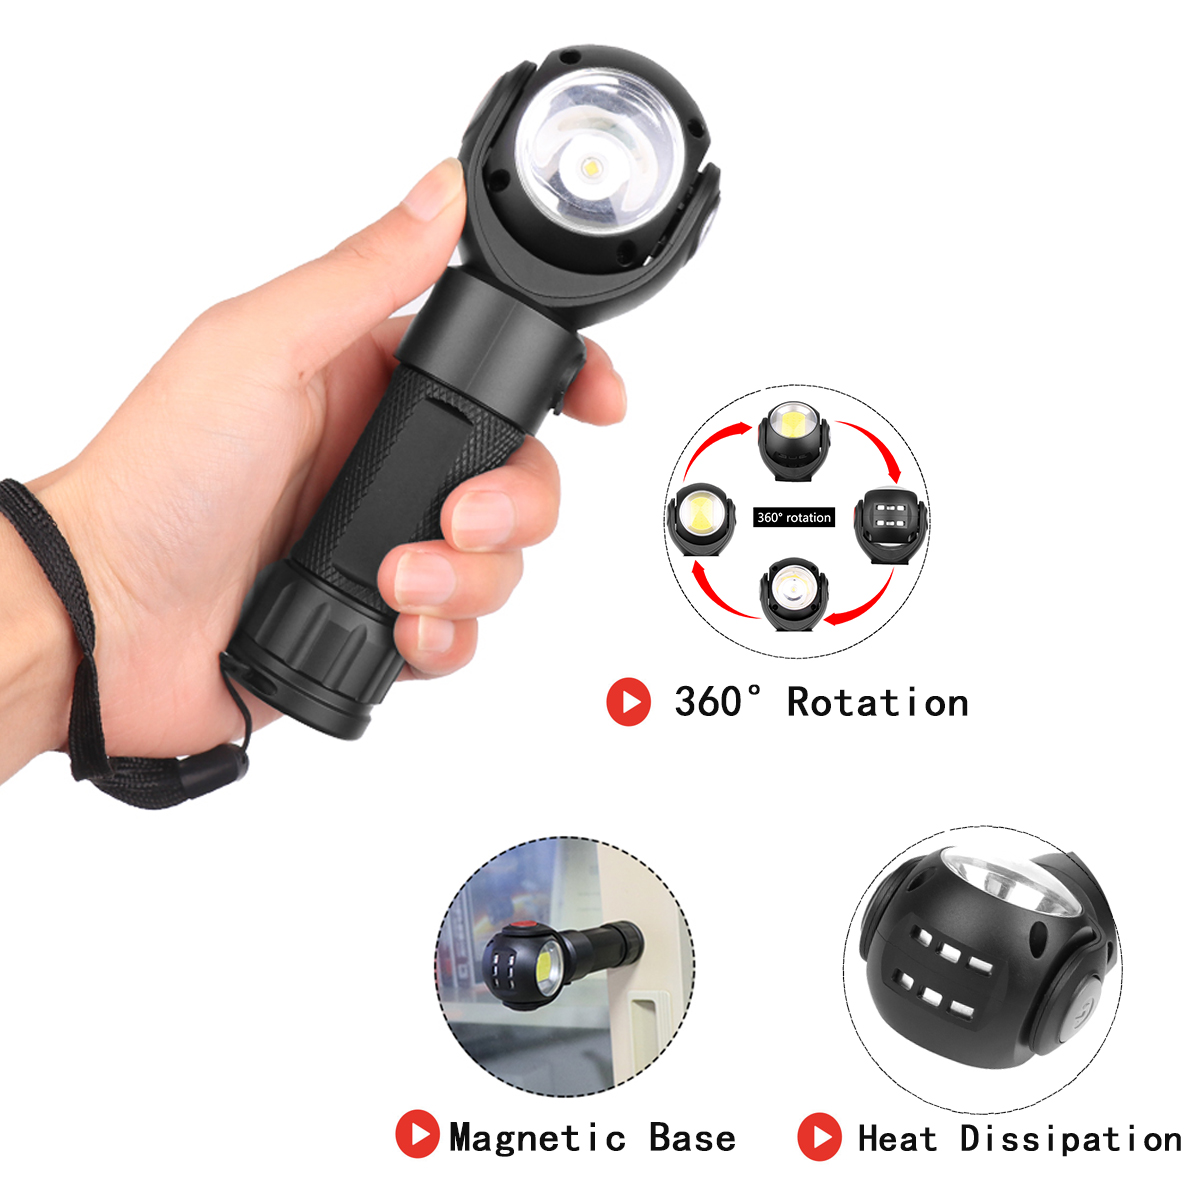 US $115 6 |T6+COB LED flashlight 360 degree rotation Tail with magnet  Multifunctional safety torch Custom LOGO USB charge 18650 Battery -in LED